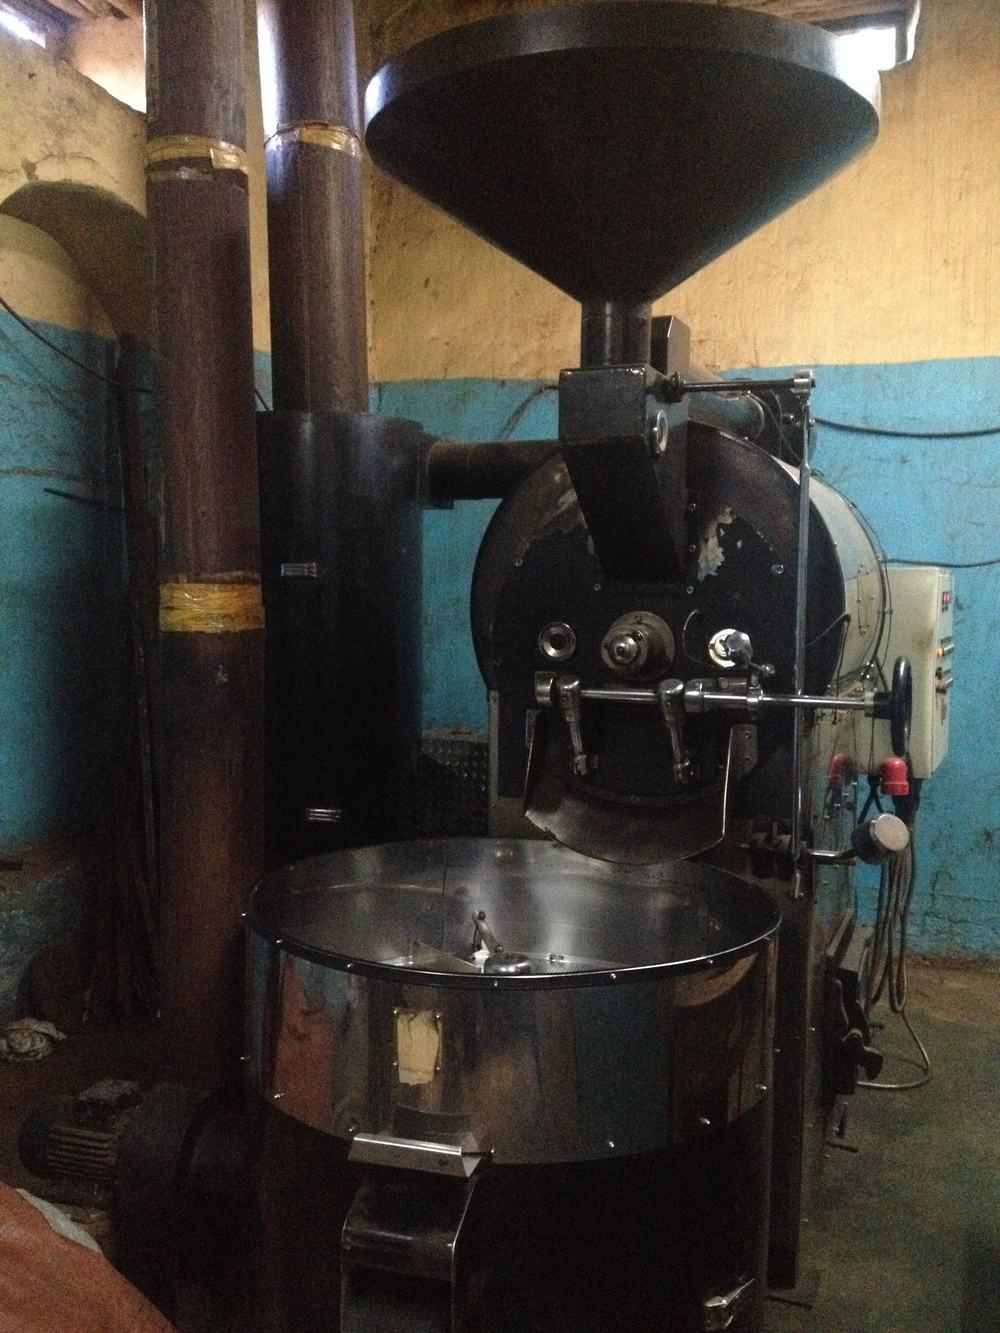 The Harar Coffee Company